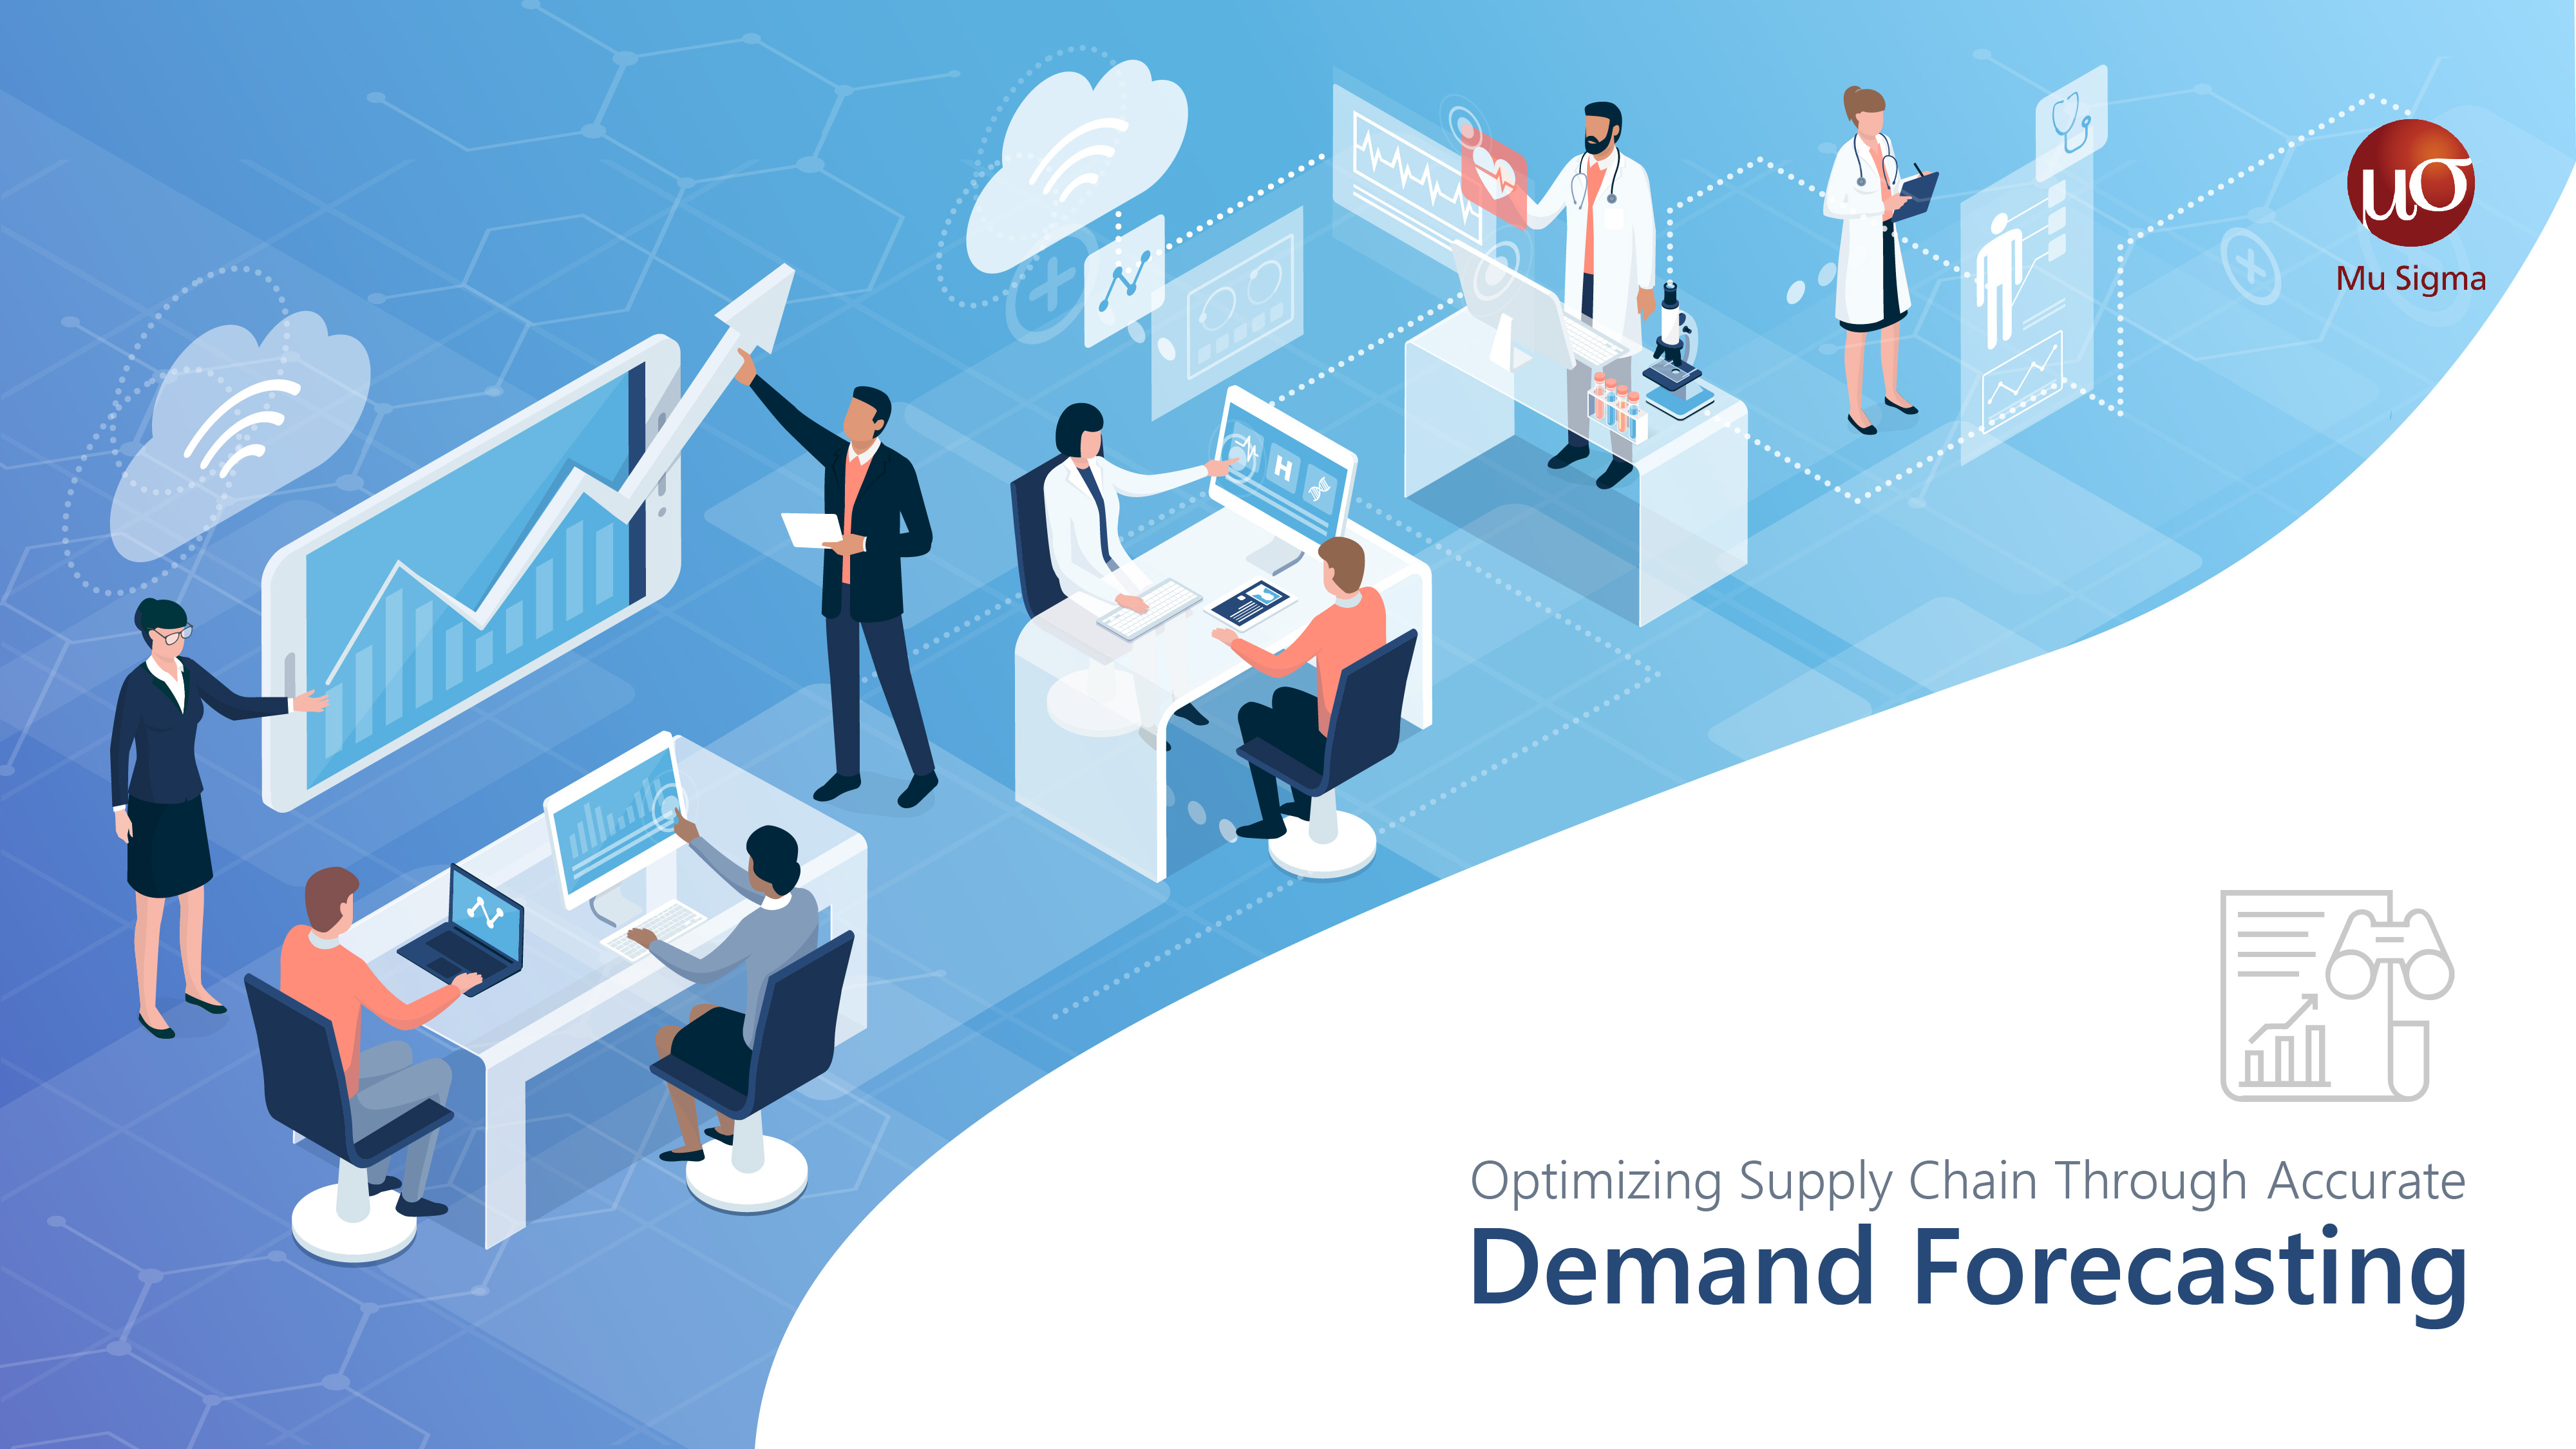 Demand Forecasting for a Medical Devices Company